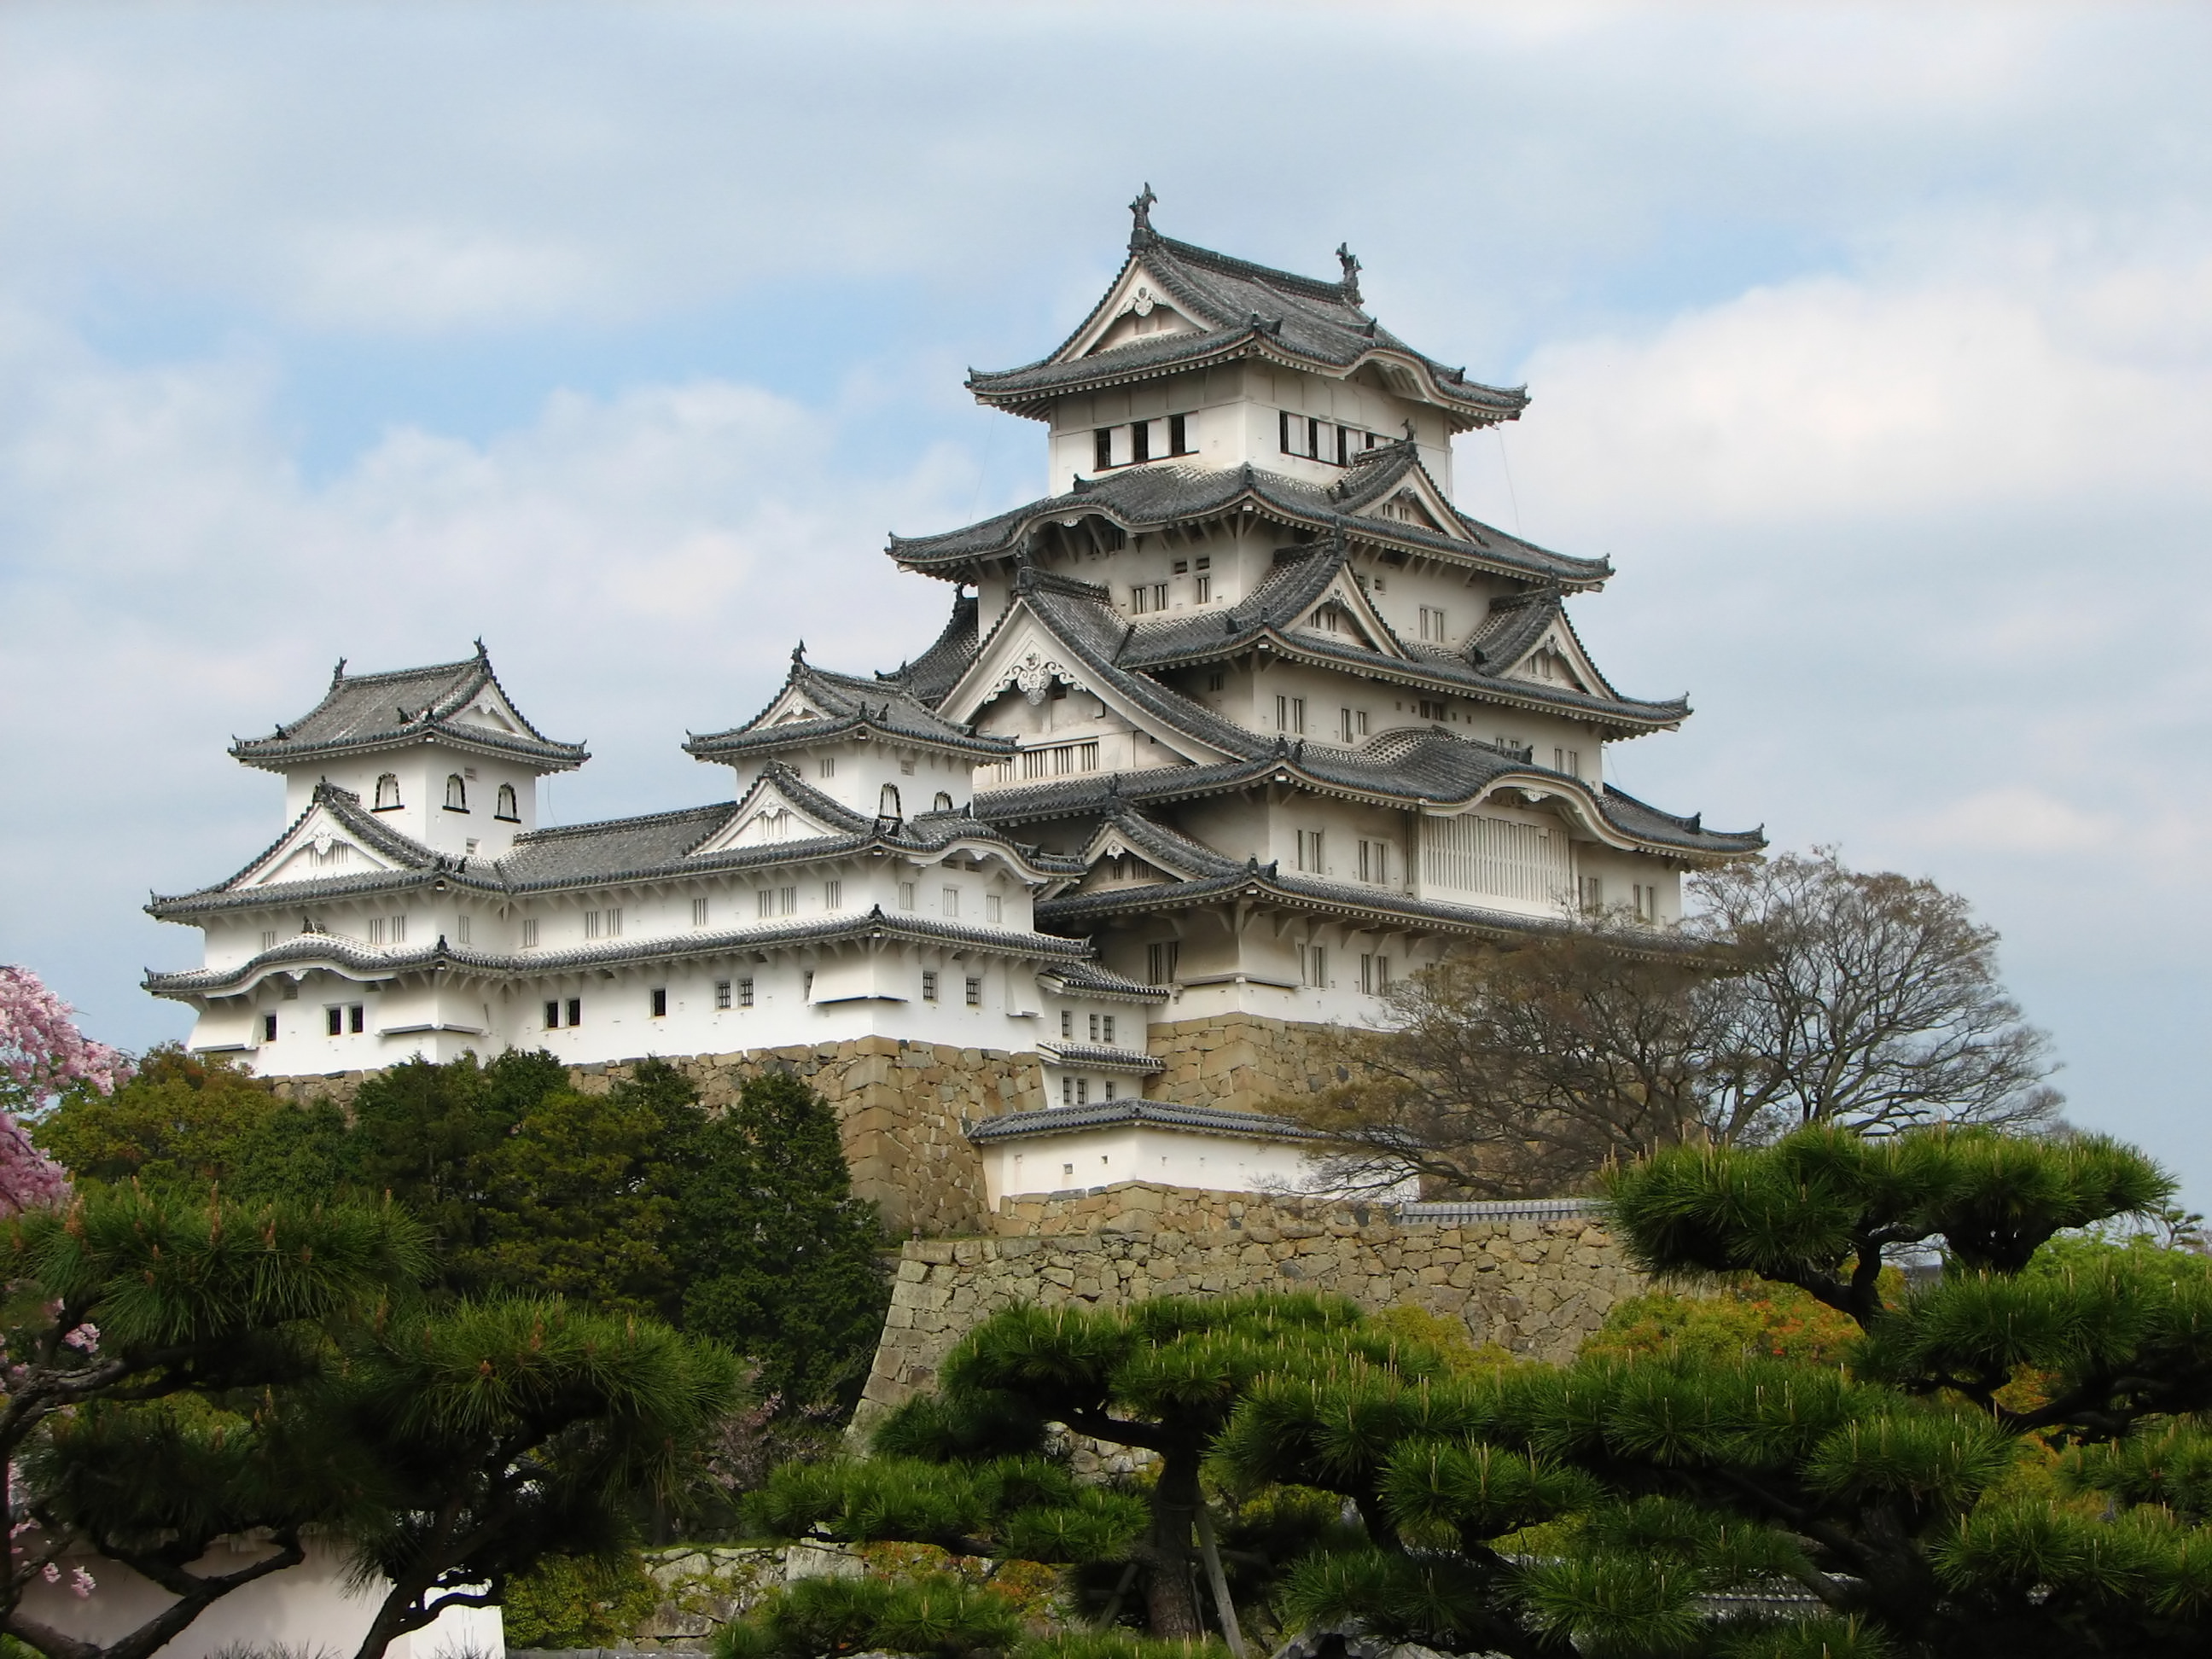 Himeji Day Trip from Kyoto | Kyoto, Himeji castle and Japan